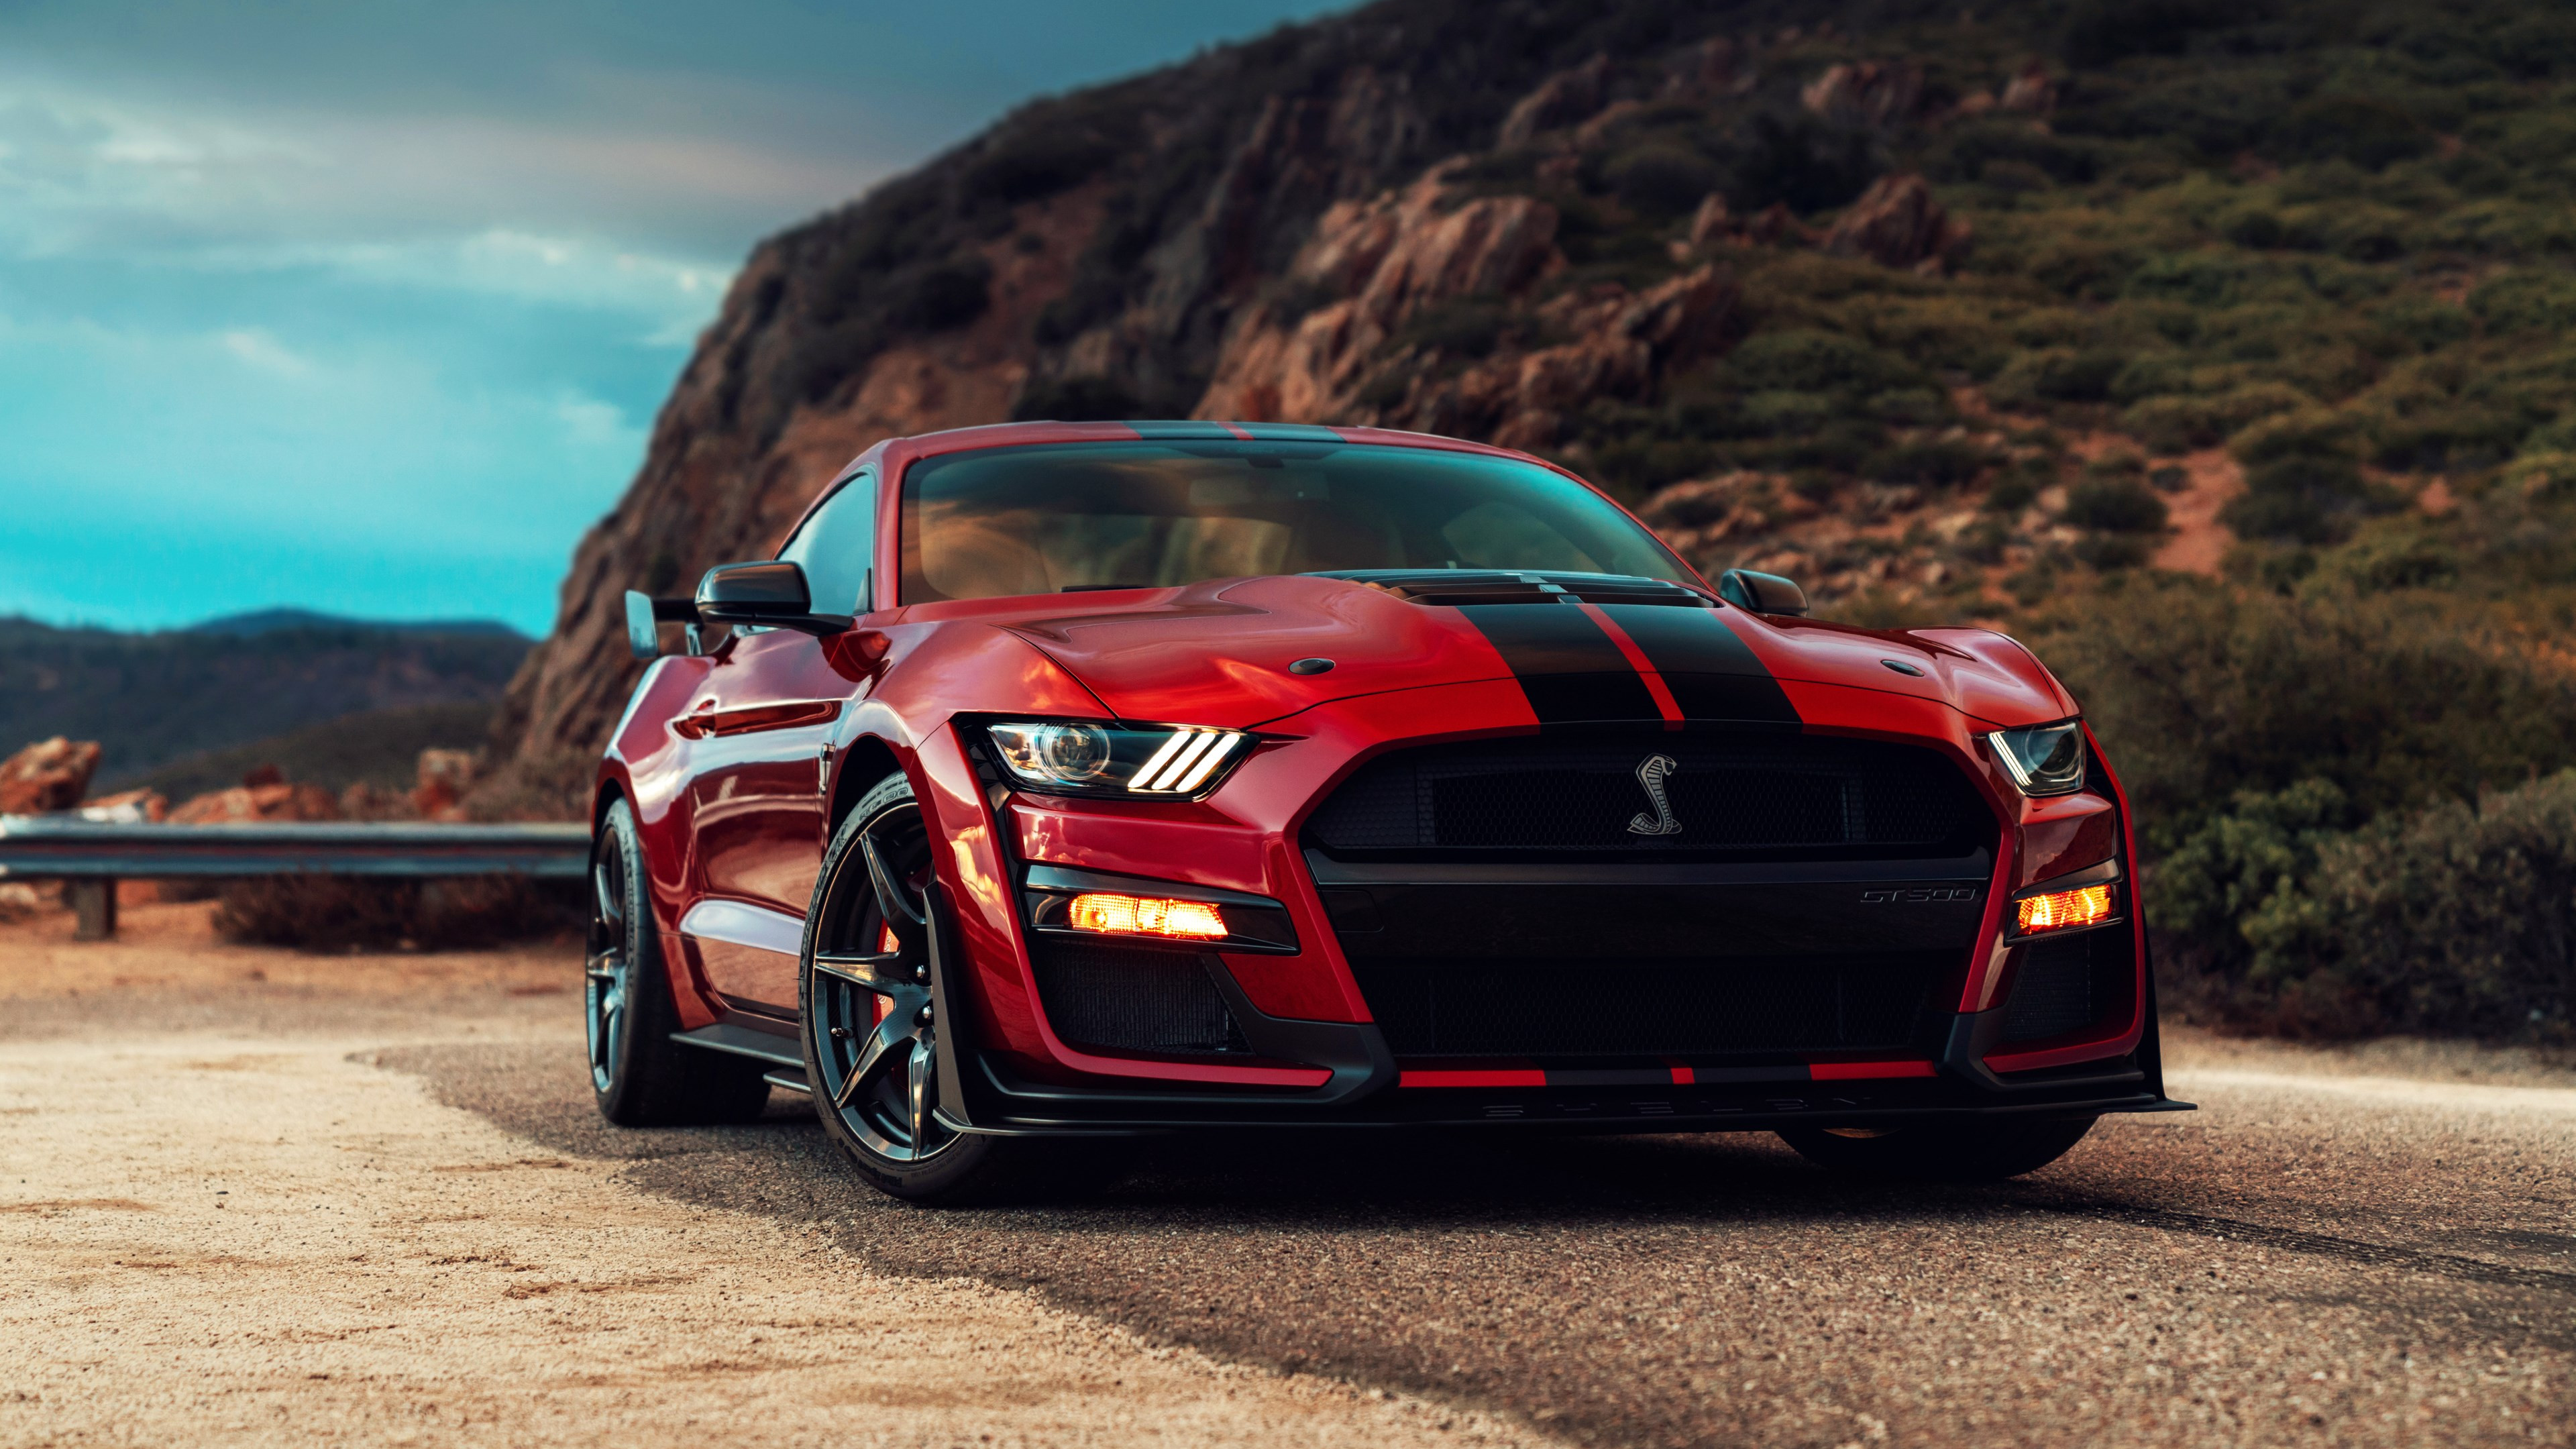 Ford Mustang Shelby GT500 wallpaper 3840x2160